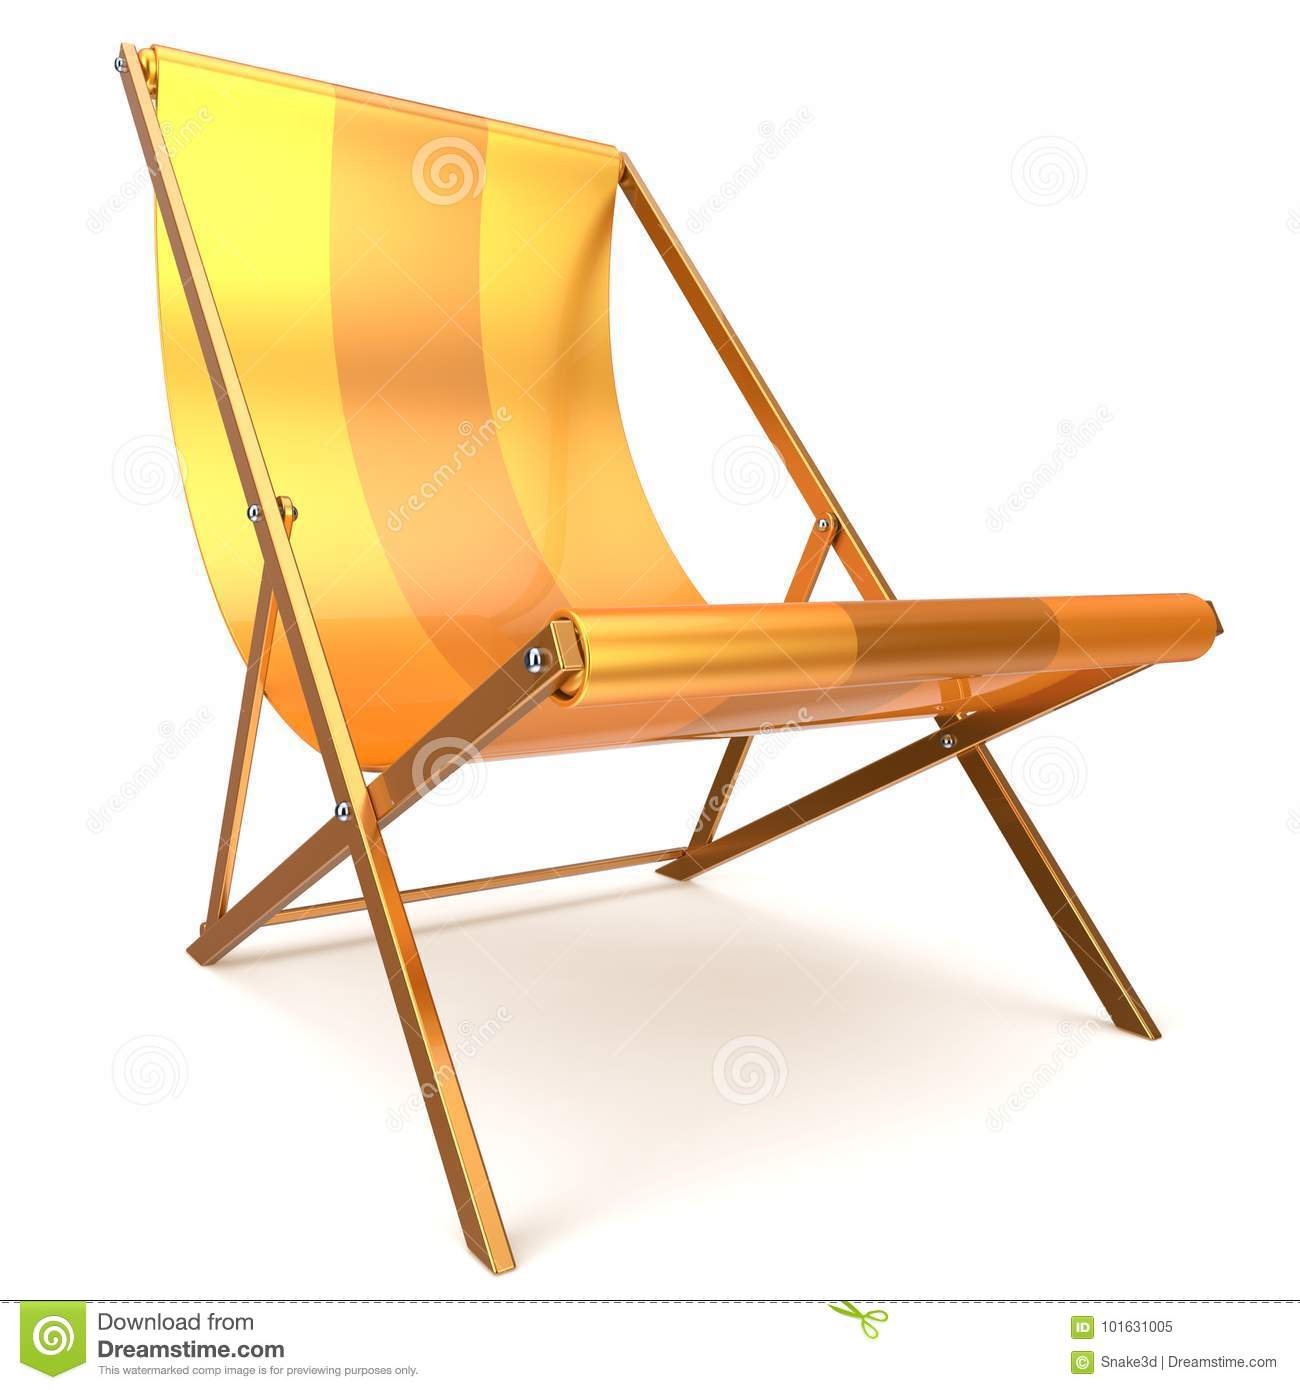 Download Beach Chair Chaise Longue Yellow Relaxation Tropical Sunbathing  Stock Illustration   Illustration Of Nobody,